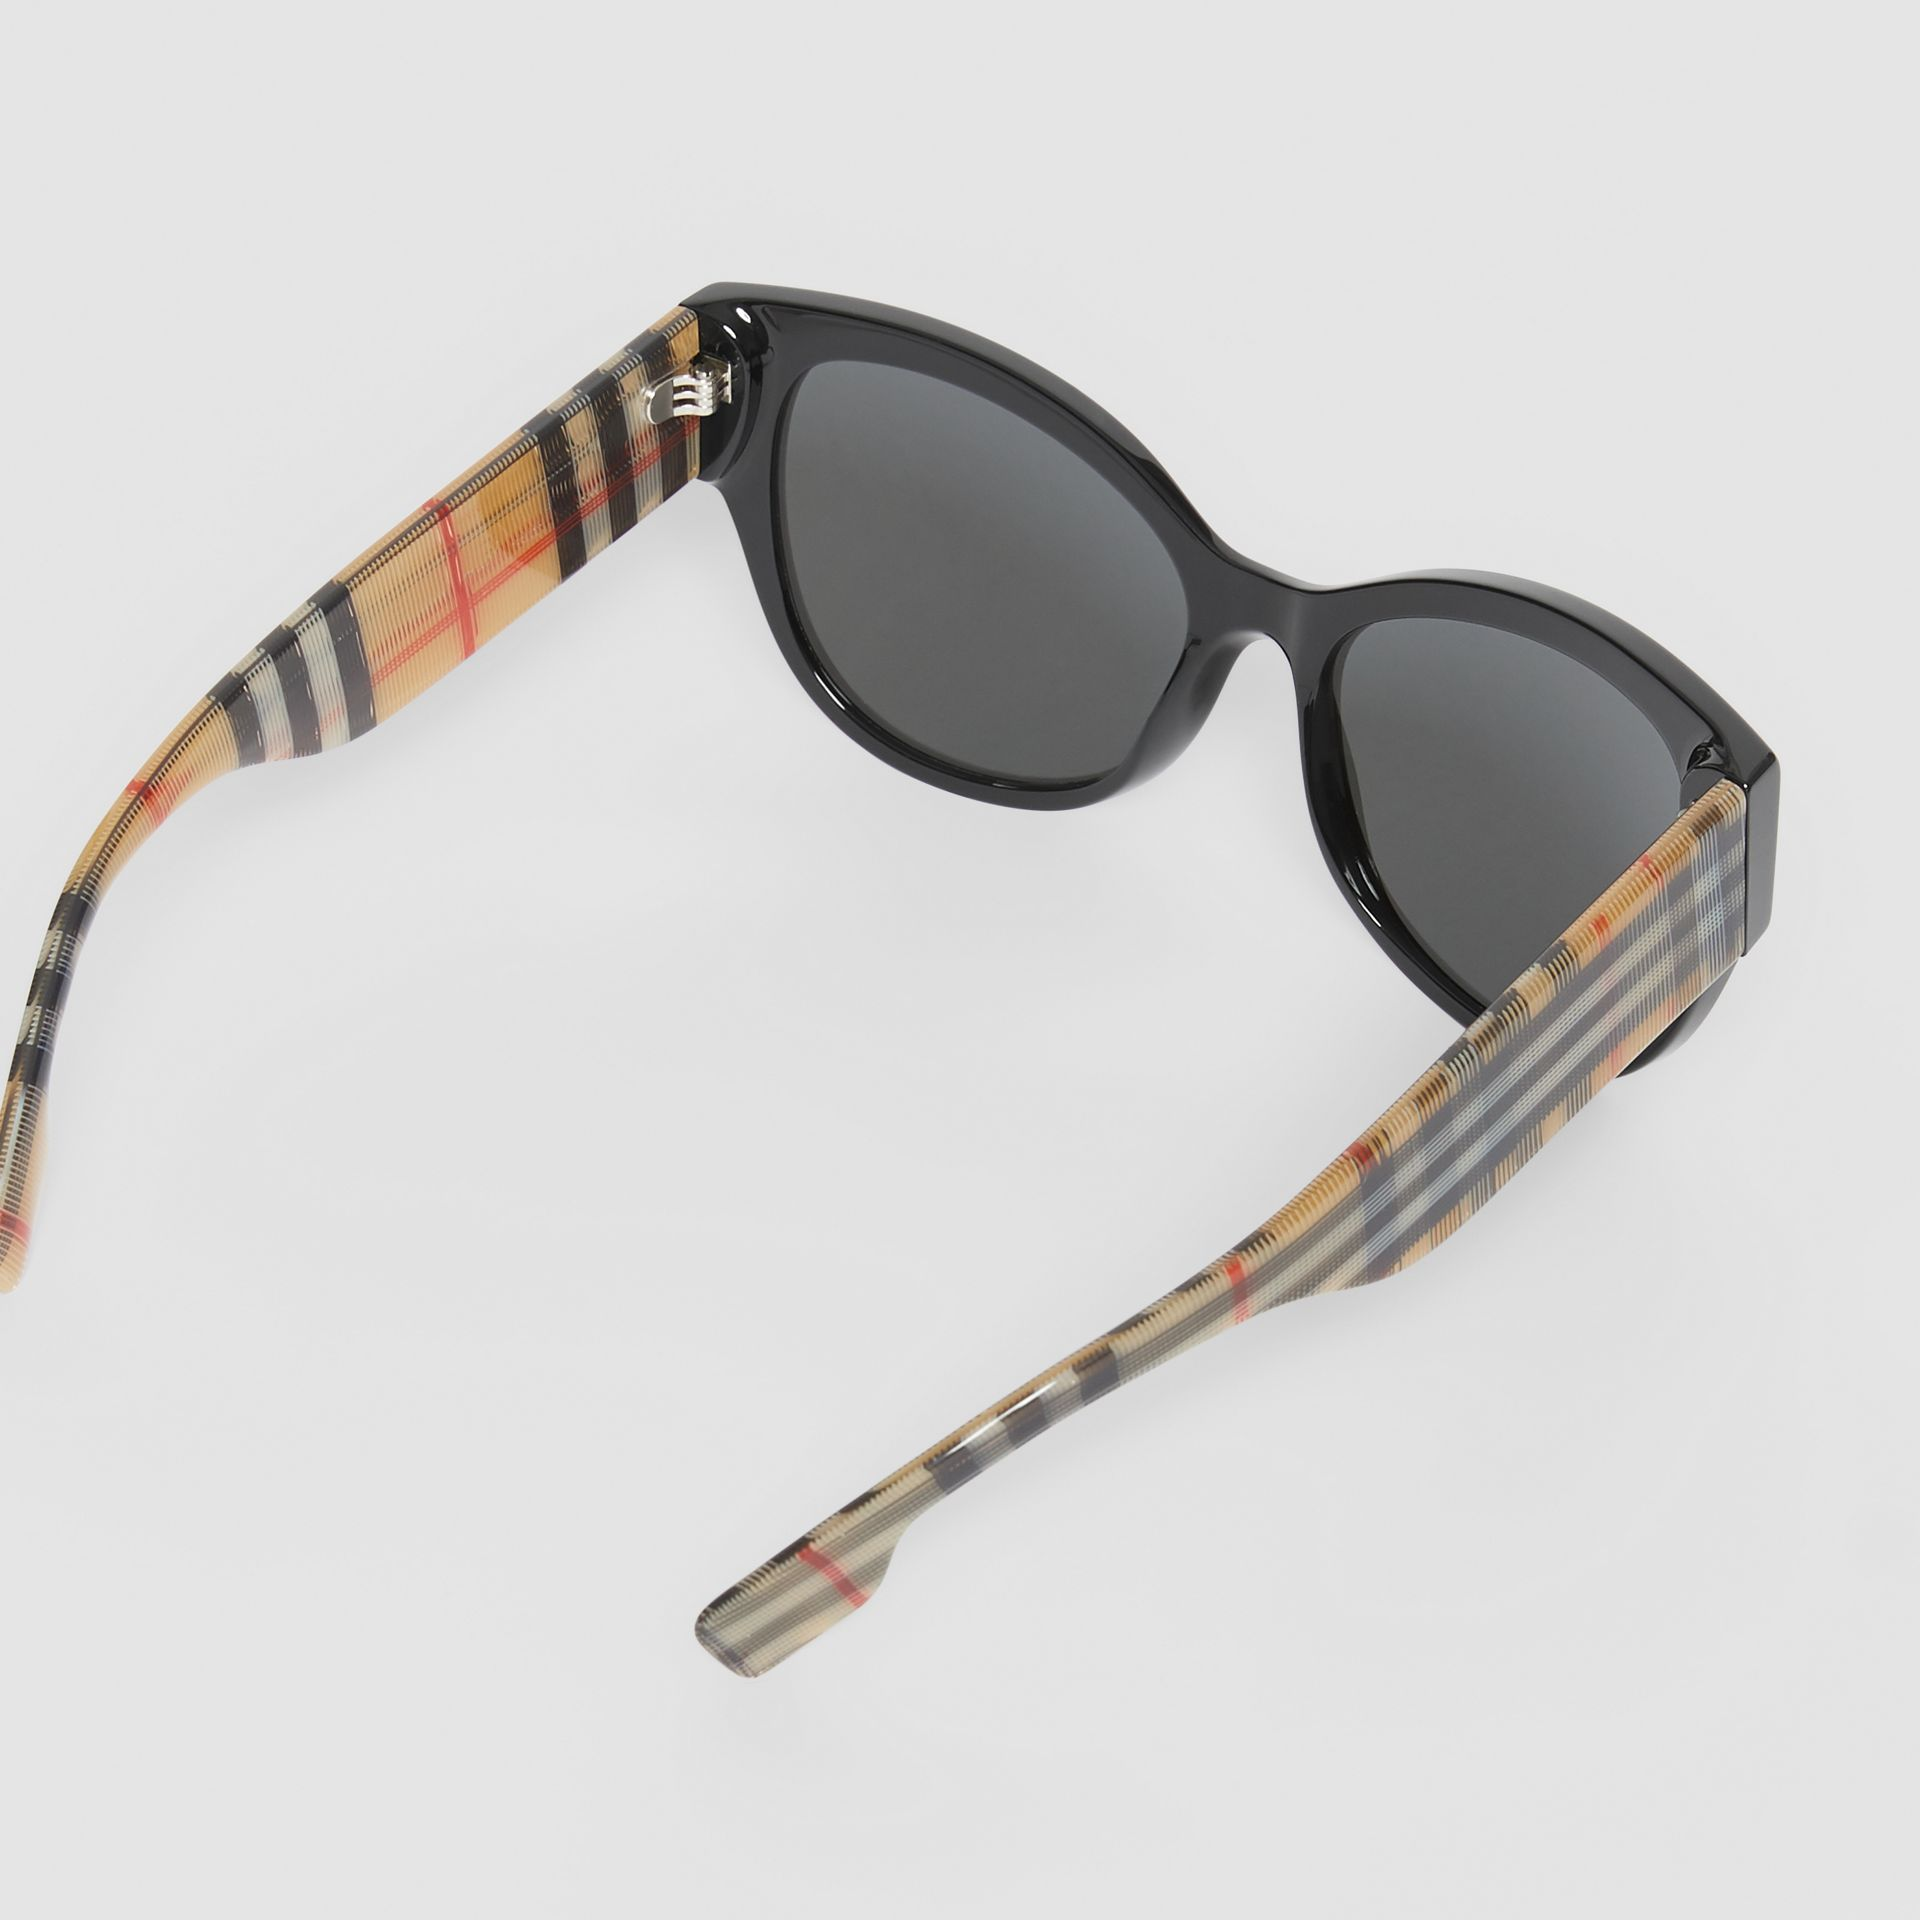 Vintage Check Detail Butterfly Frame Sunglasses in Black/beige - Women | Burberry Australia - gallery image 4